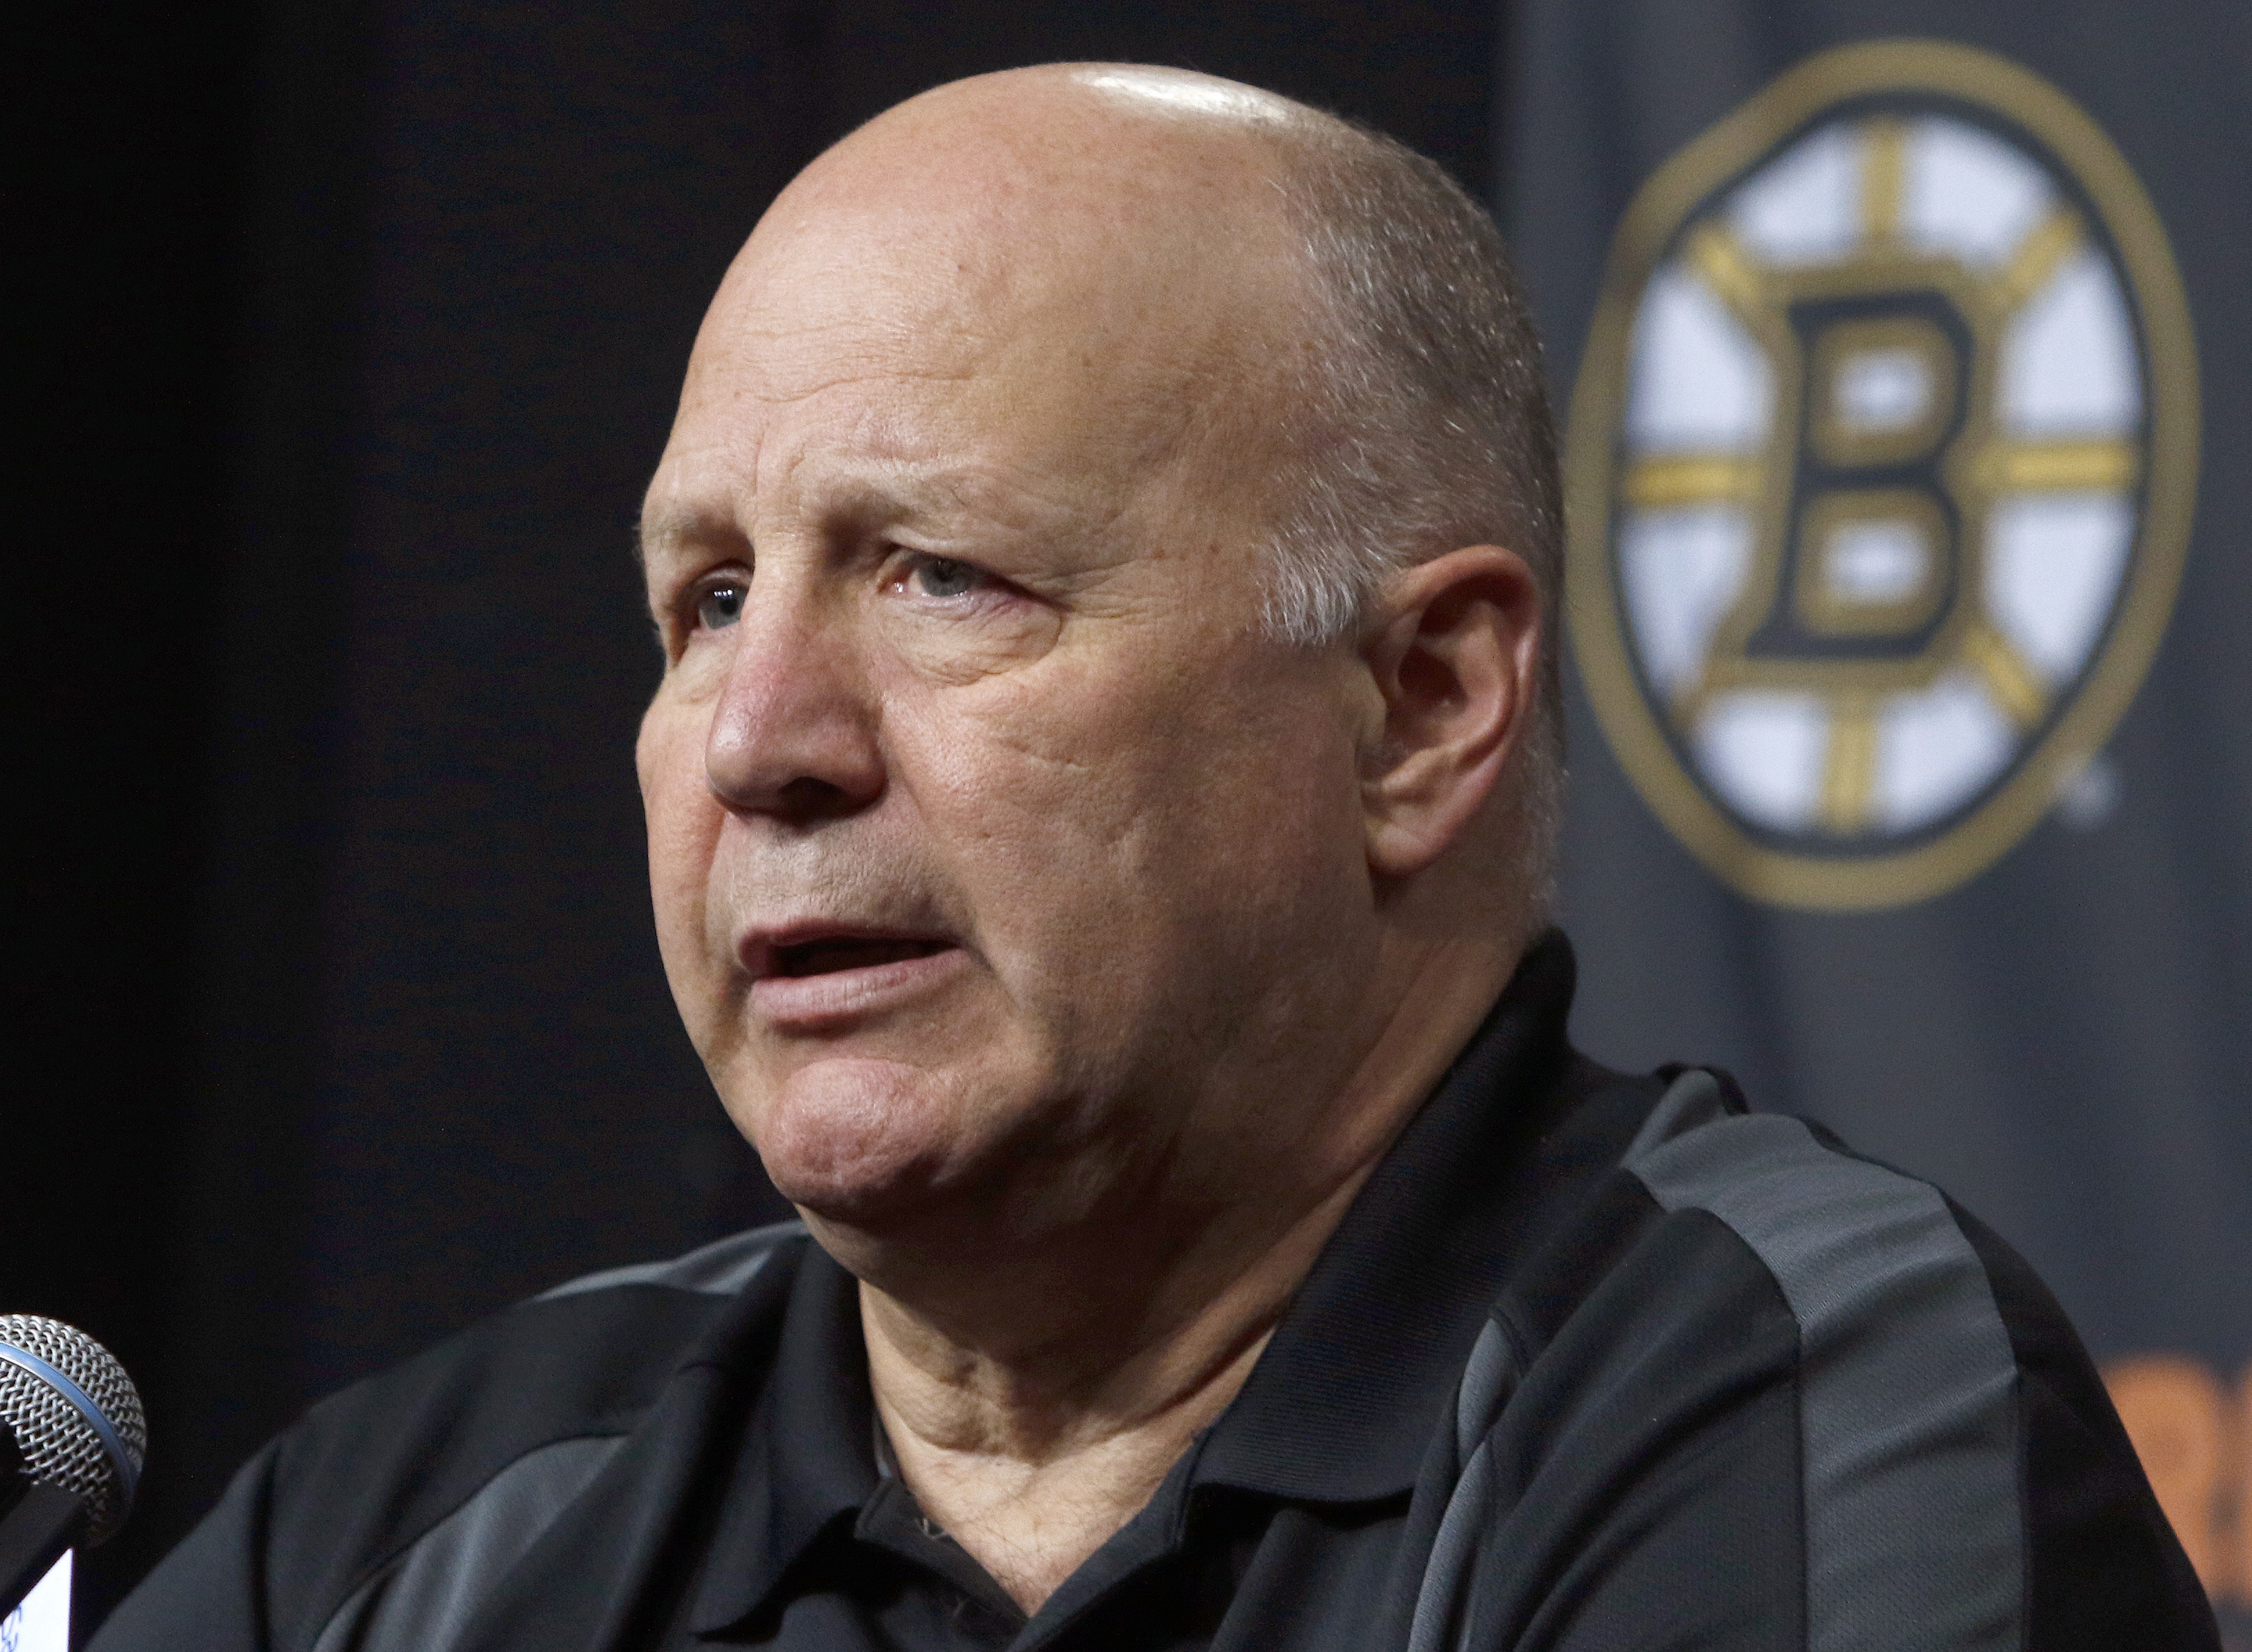 Boston Bruins head coach Claude Julien speaks at a news conference at TD Garden Thursday, April 14, 2016, in Boston. The Bruins failed to reach the playoffs for the second straight year. (AP Photo/Bill Sikes)